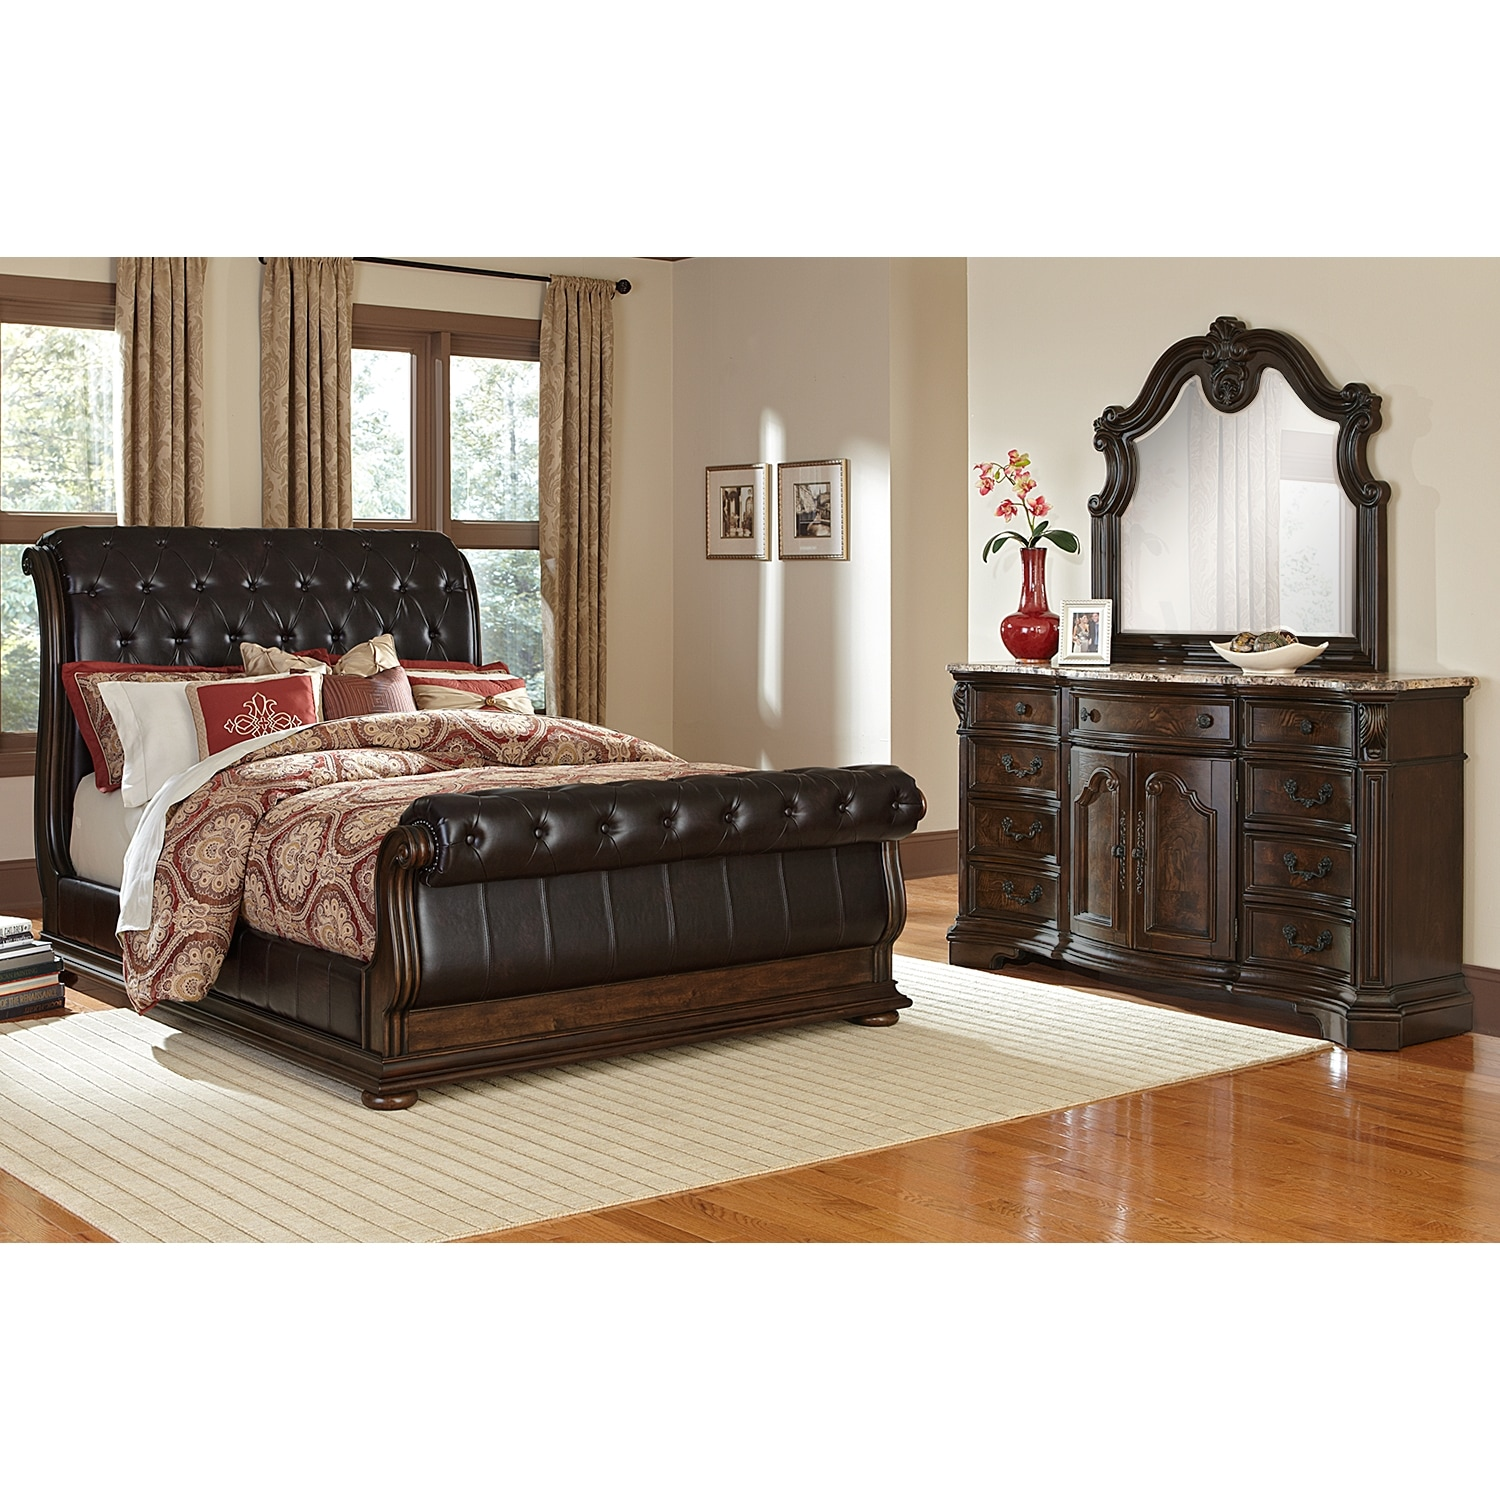 shop 5 piece bedroom sets value city furniture 17687 | 276878 fit inside 320 320 composite to center center 320 320 background color white